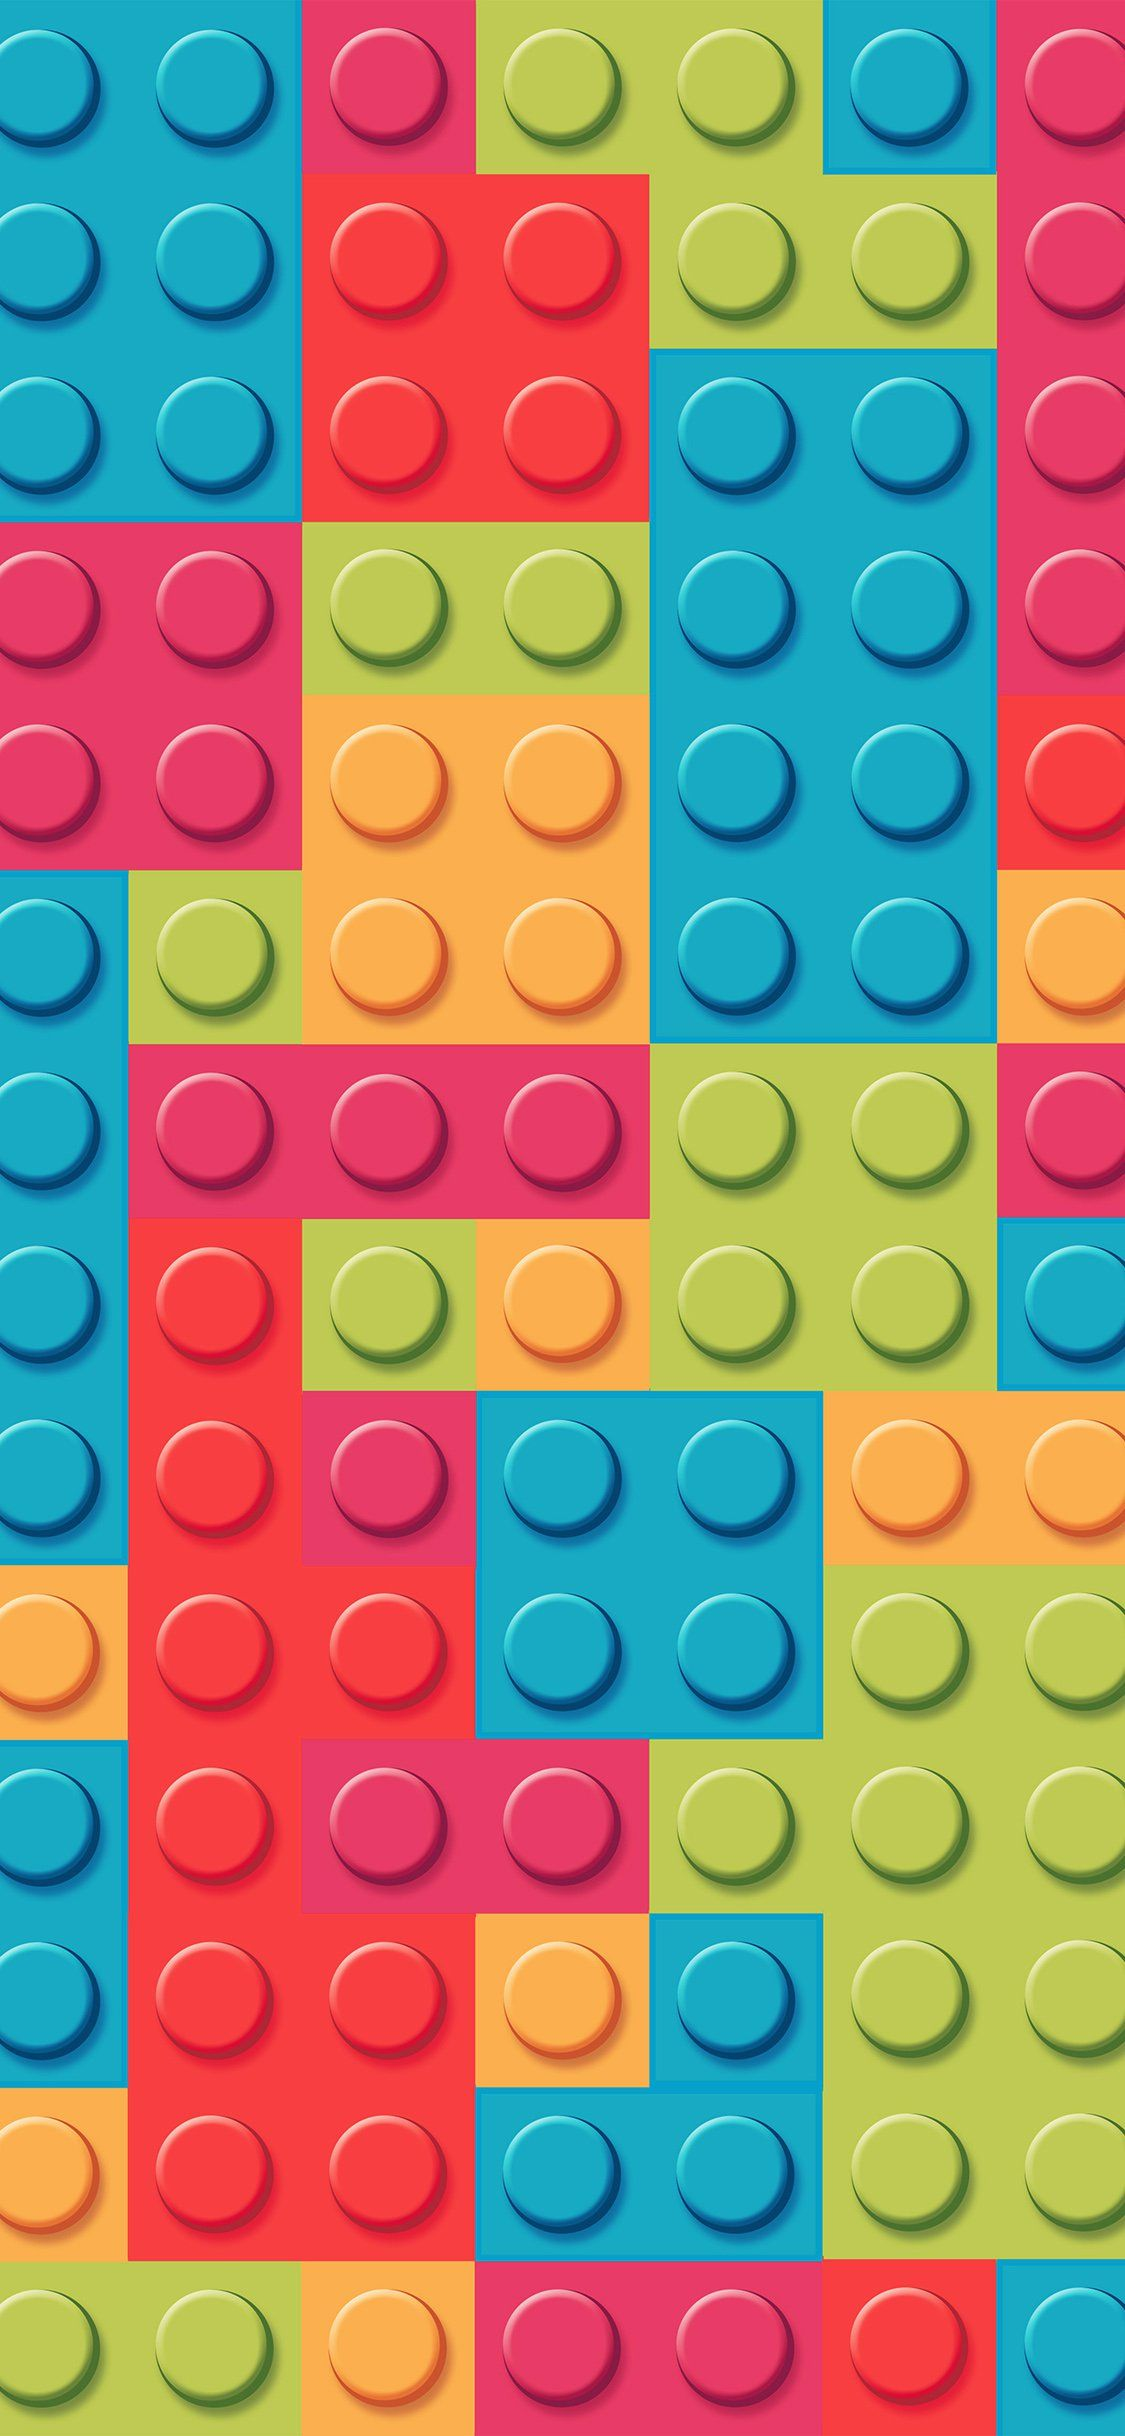 Lego Iphone Wallpapers Top Free Lego Iphone Backgrounds